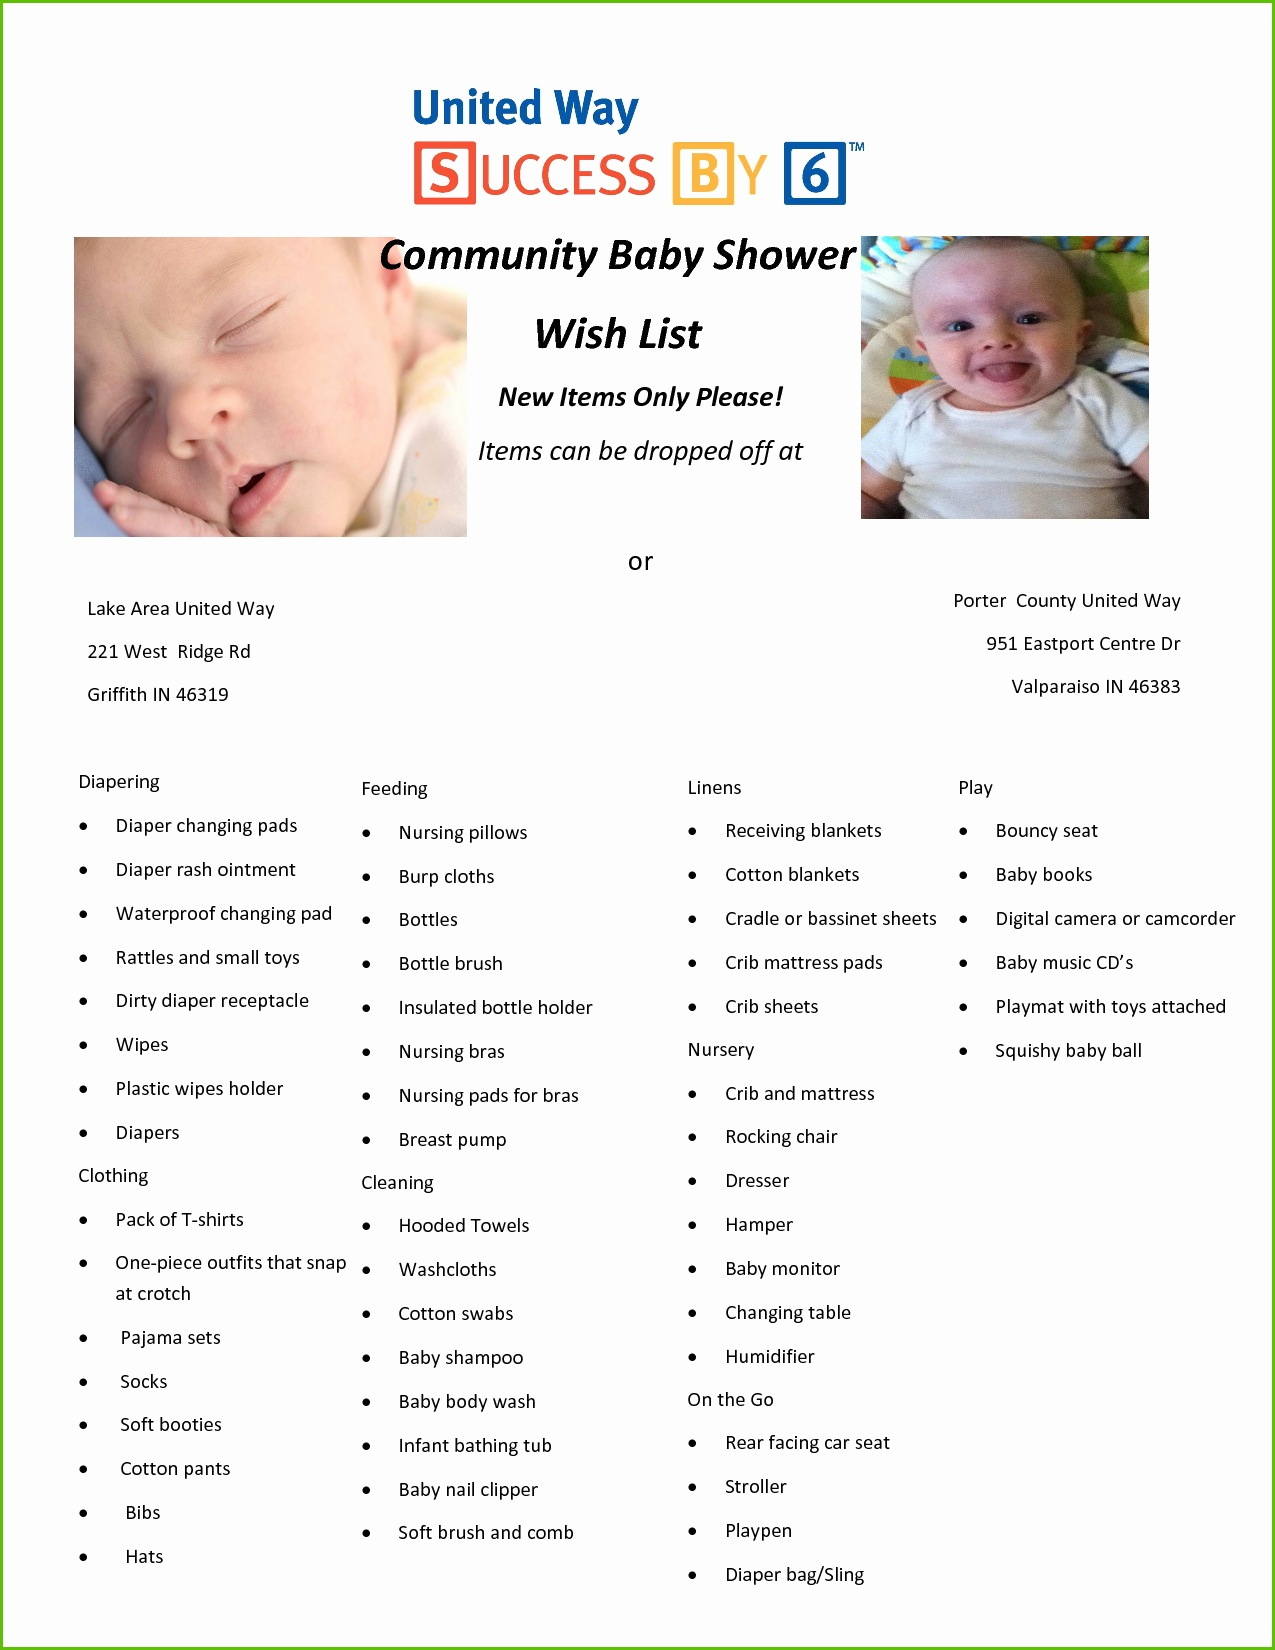 Amazing Baby Shower Wish List Fresh Baby Shower Wish List Template 28 Images within Inspirational Baby Shower List